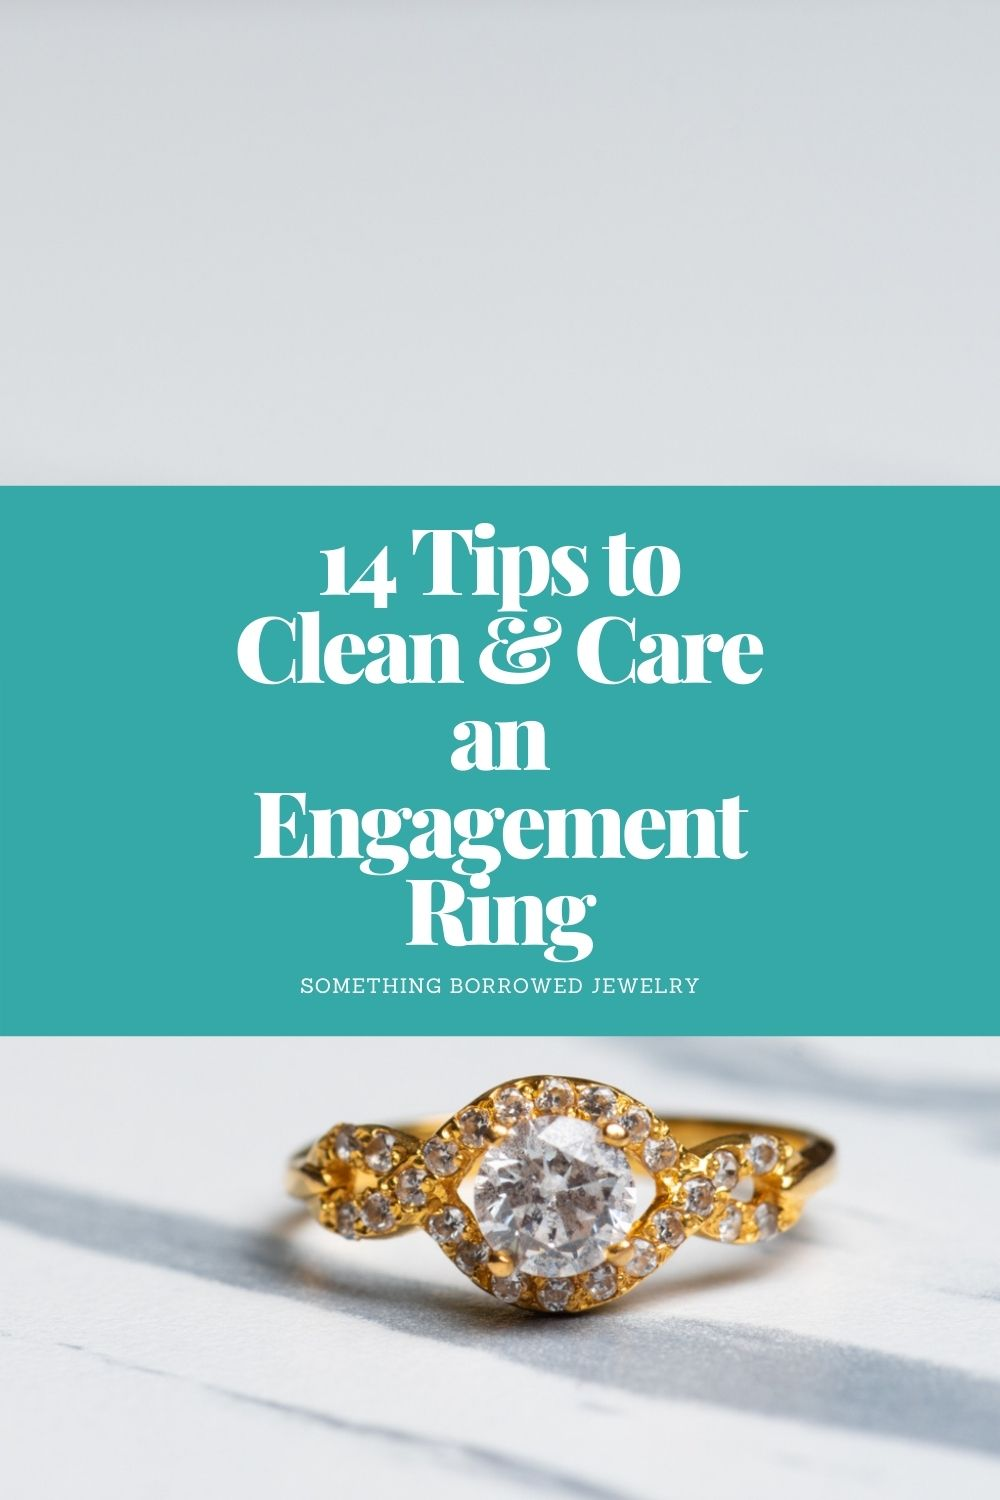 14 Tips to Clean & Care an Engagement Ring pin 2